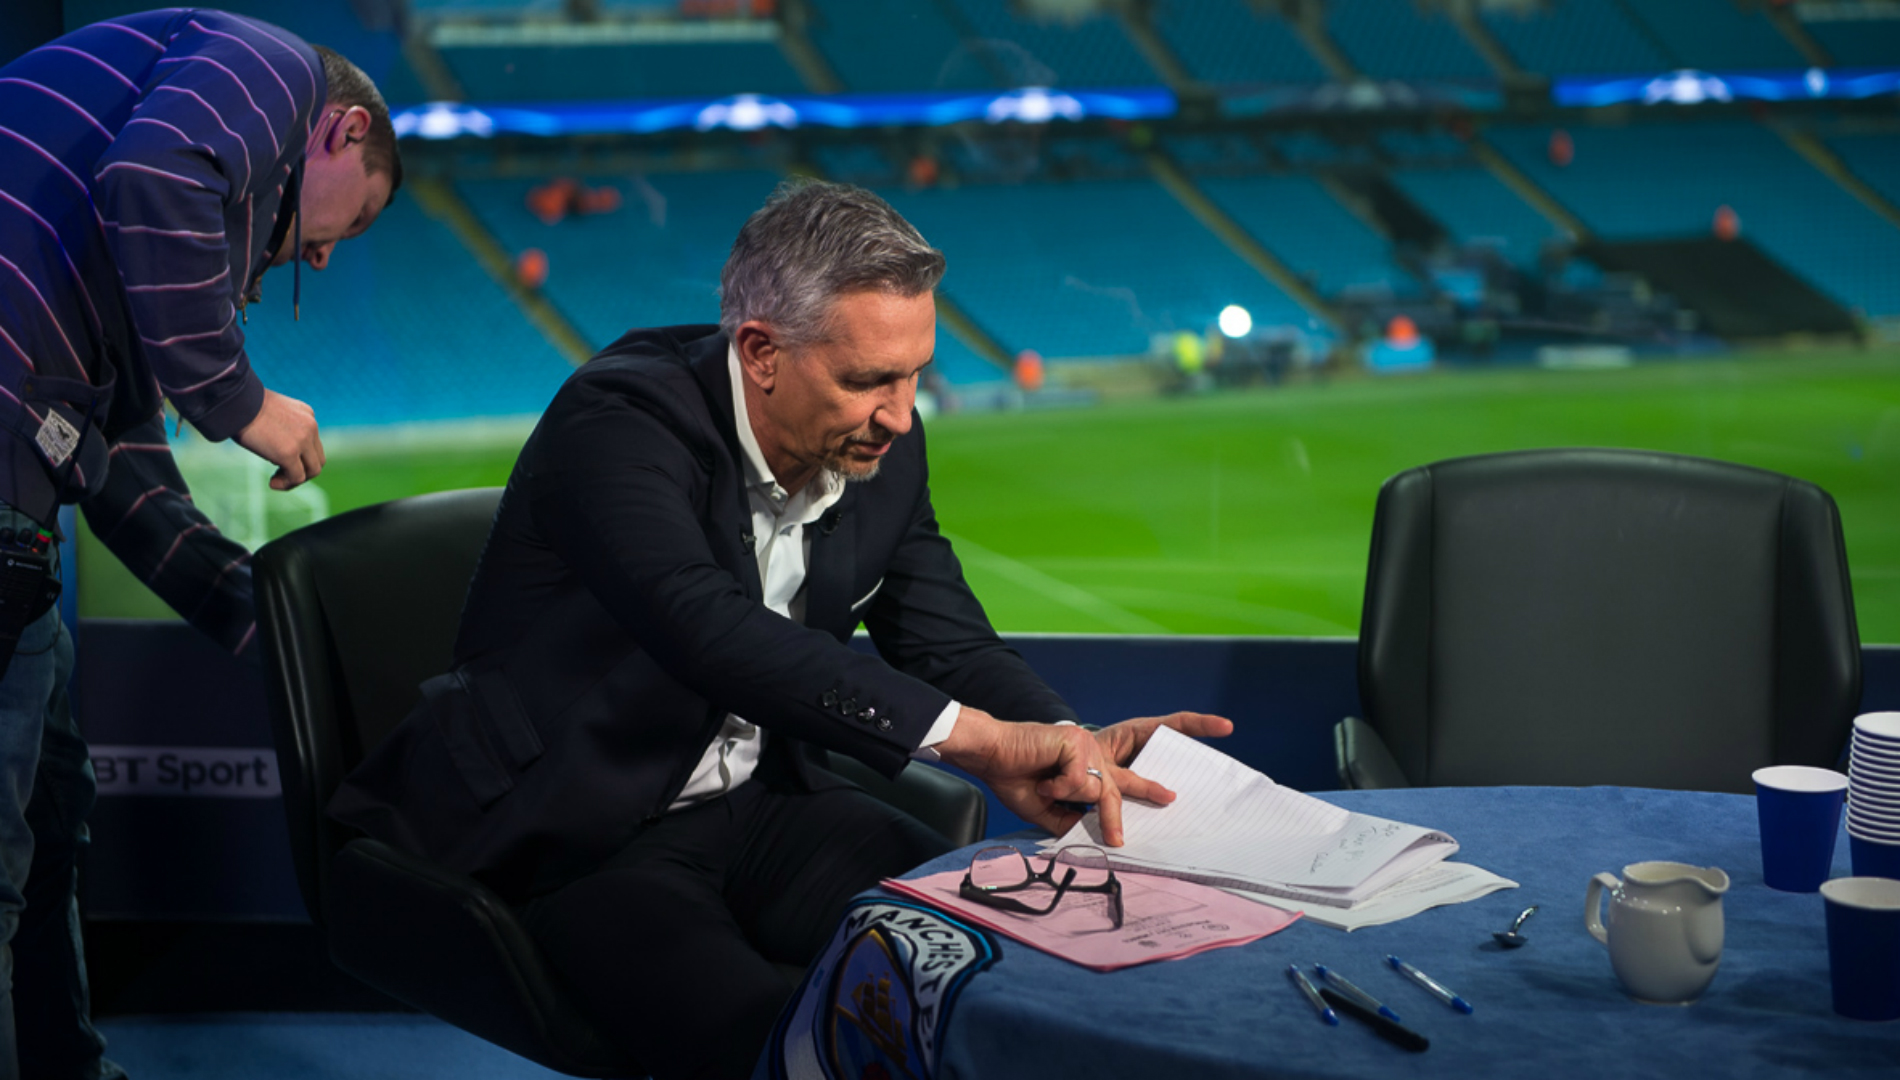 Gary-lineker-goes-over-his-lines_e23wr3r37v9w11baf105q3q3p